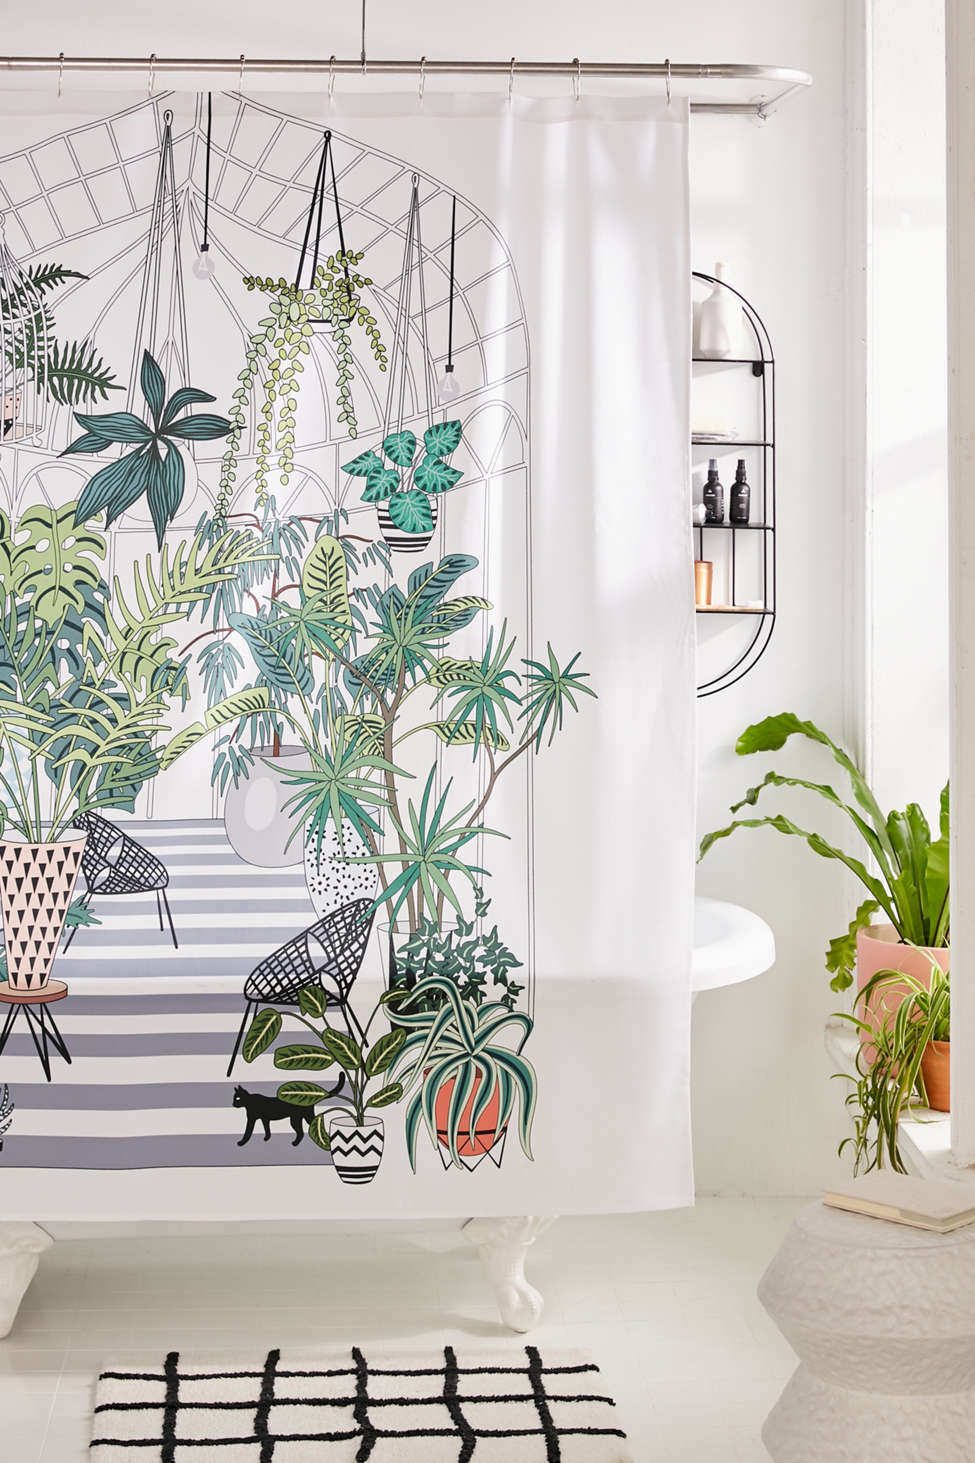 Slide View: 1: Anyuka For Deny Greenhouse Illustration Shower Curtain